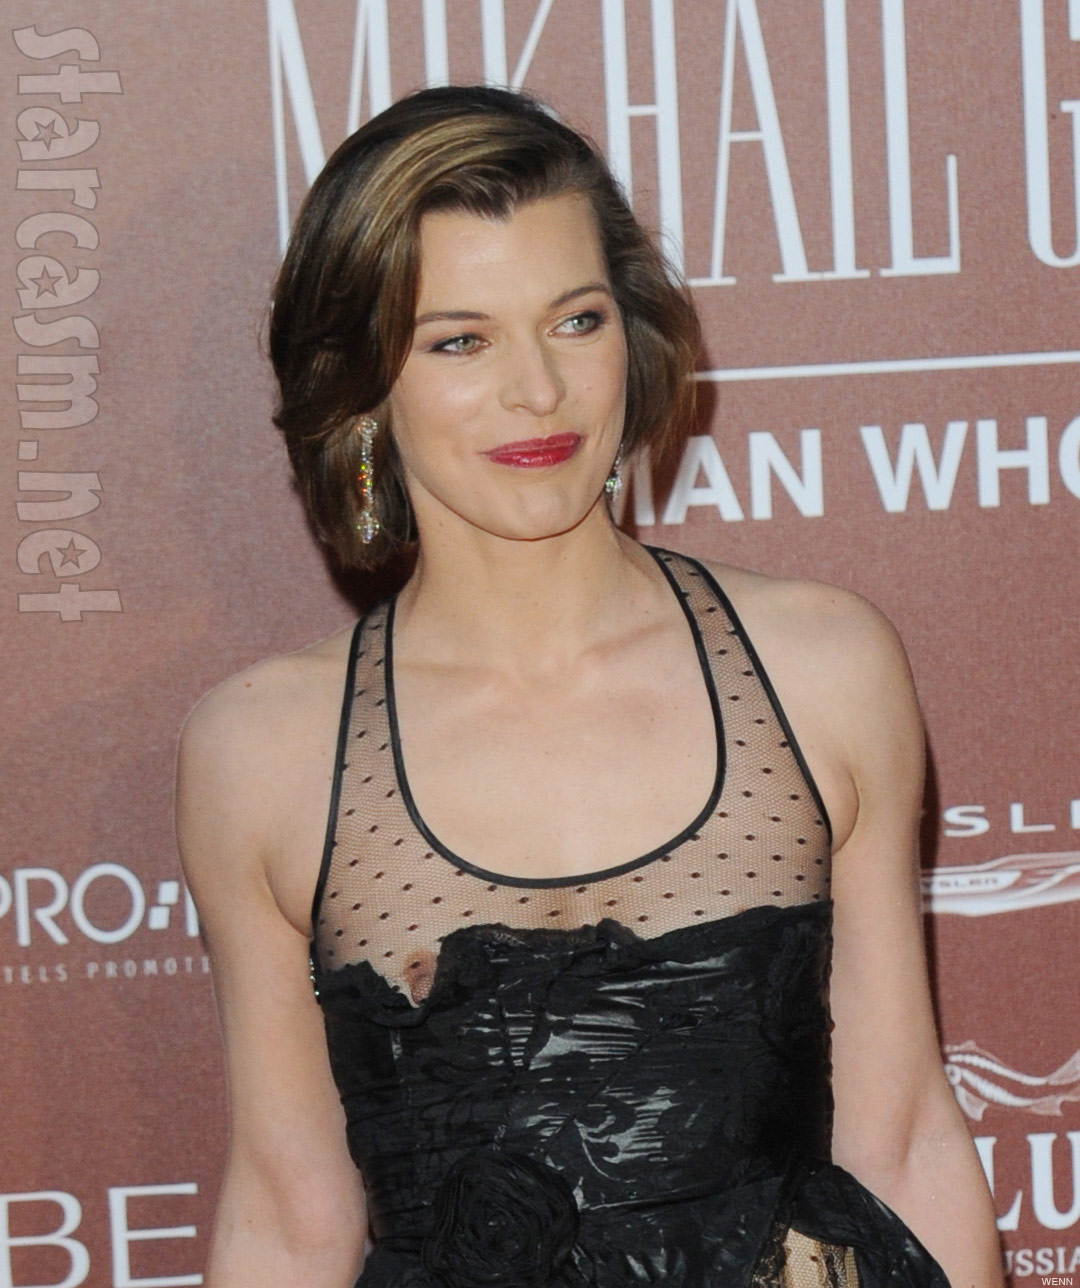 NIP SLIP: Won't Someone Tell Milla Jovovich Her Entire Breast Is Out?